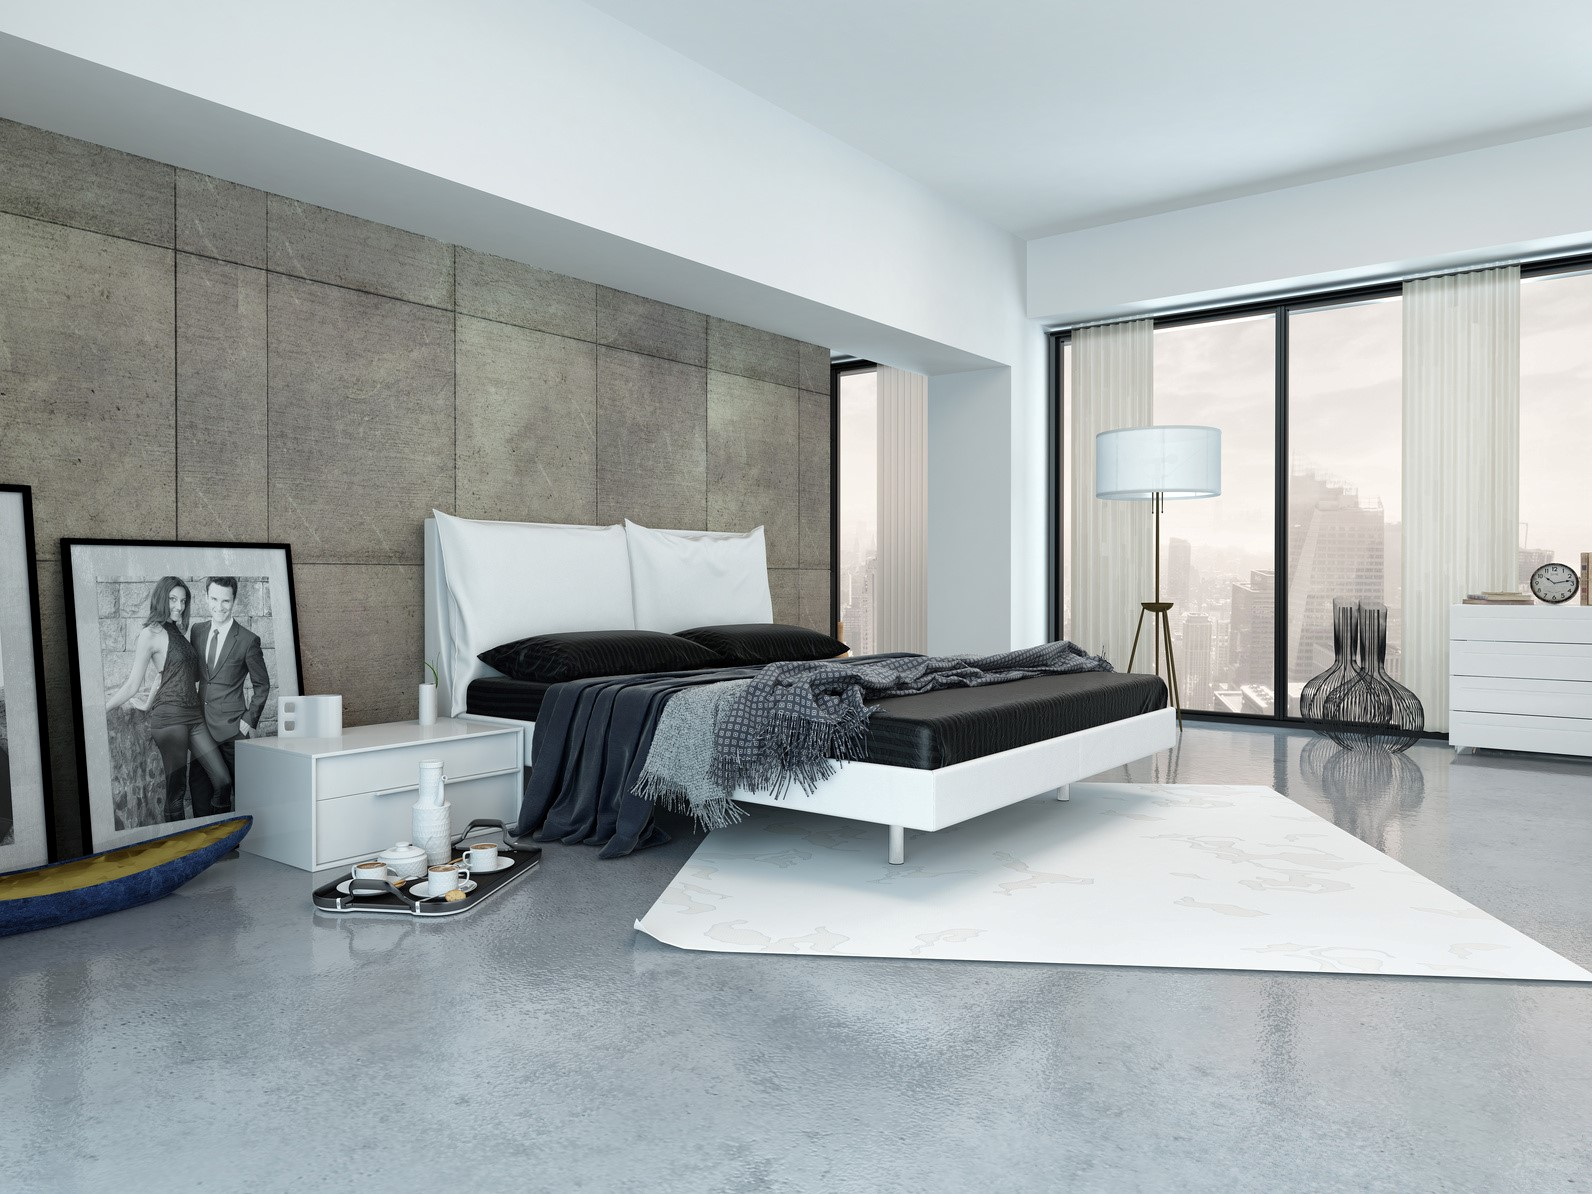 Light Blue Master Bedroom Protect Your House In Style With Wall Cladding My Decorative